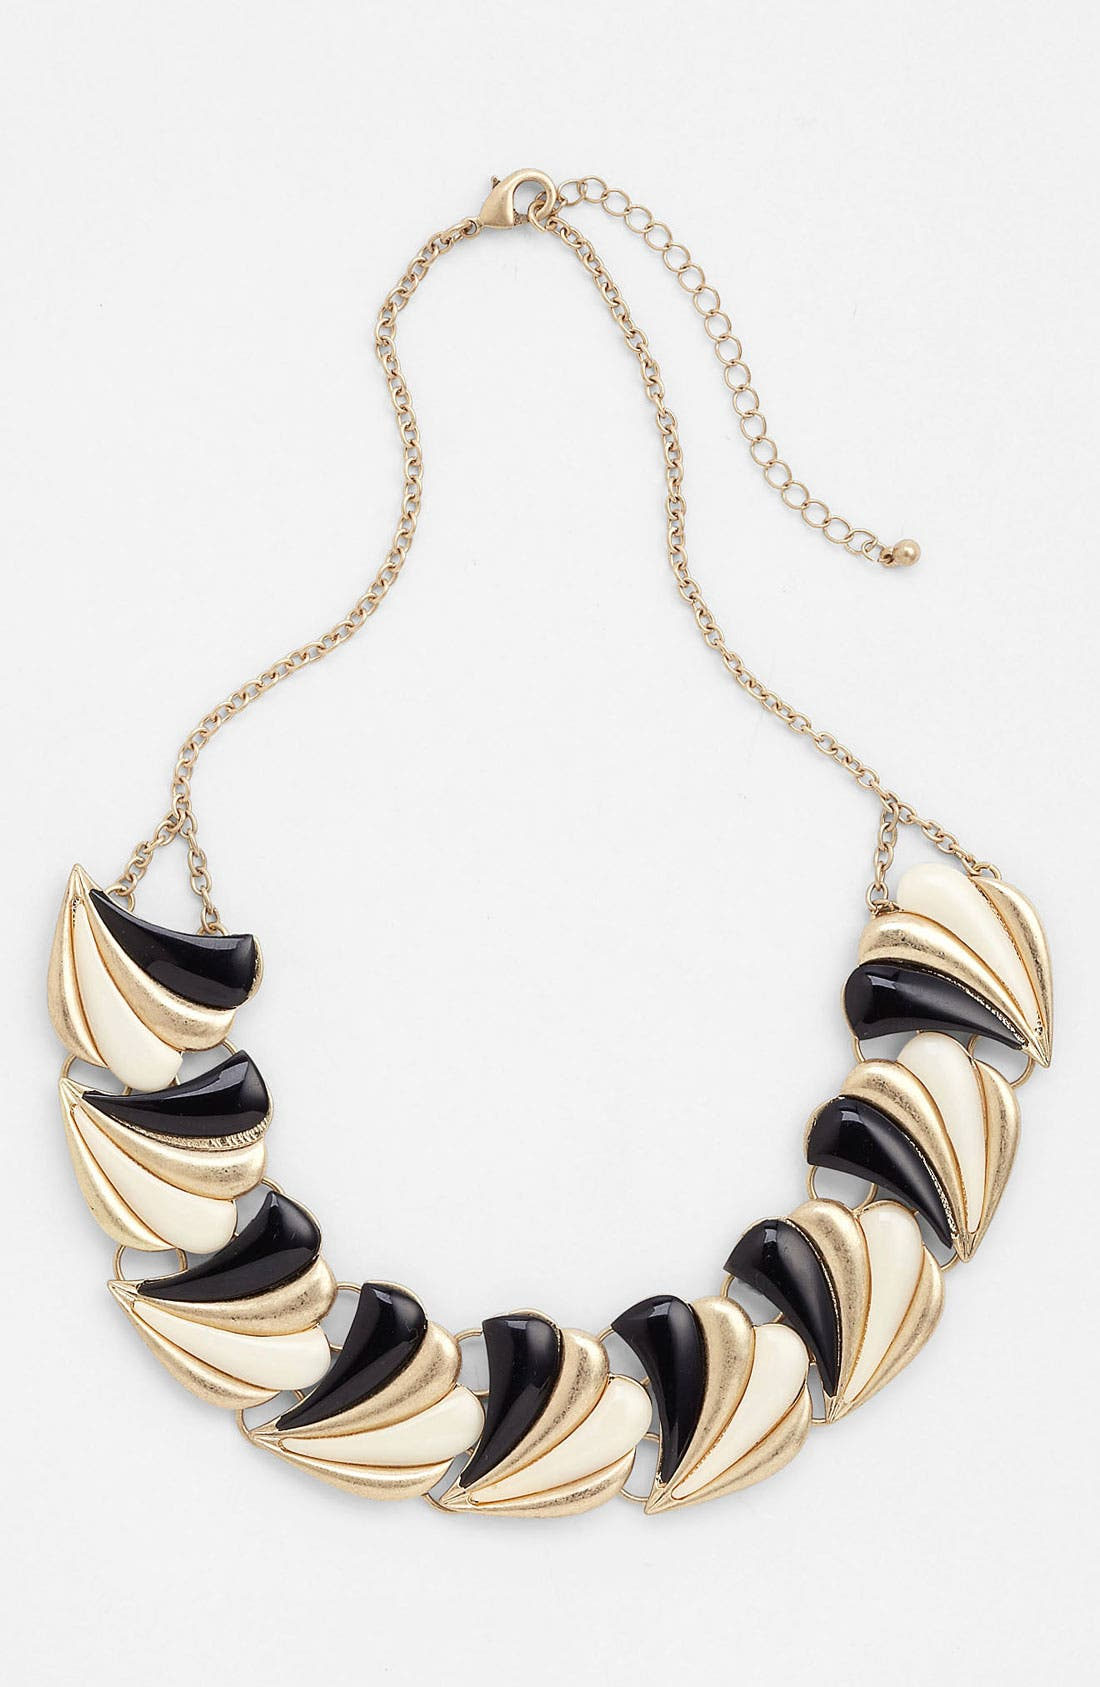 Main Image - Panacea Black & White Collar Necklace